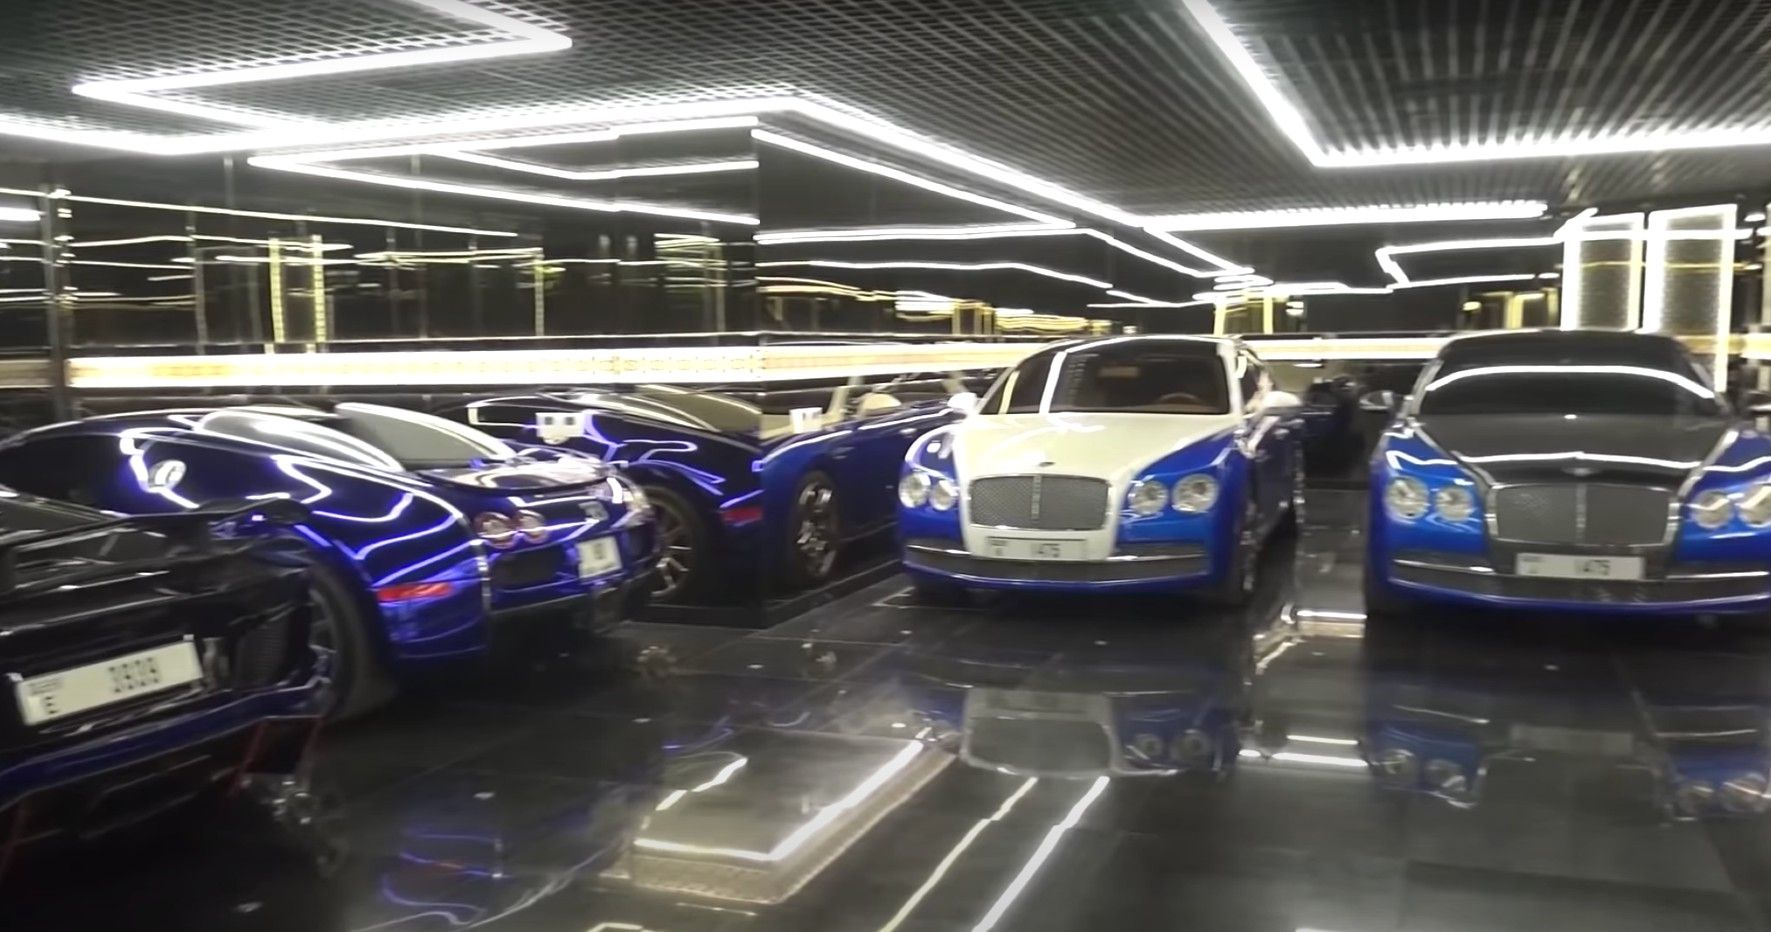 Shmee150 Tours What Could Be The Coolest Garage With The Coolest Cars